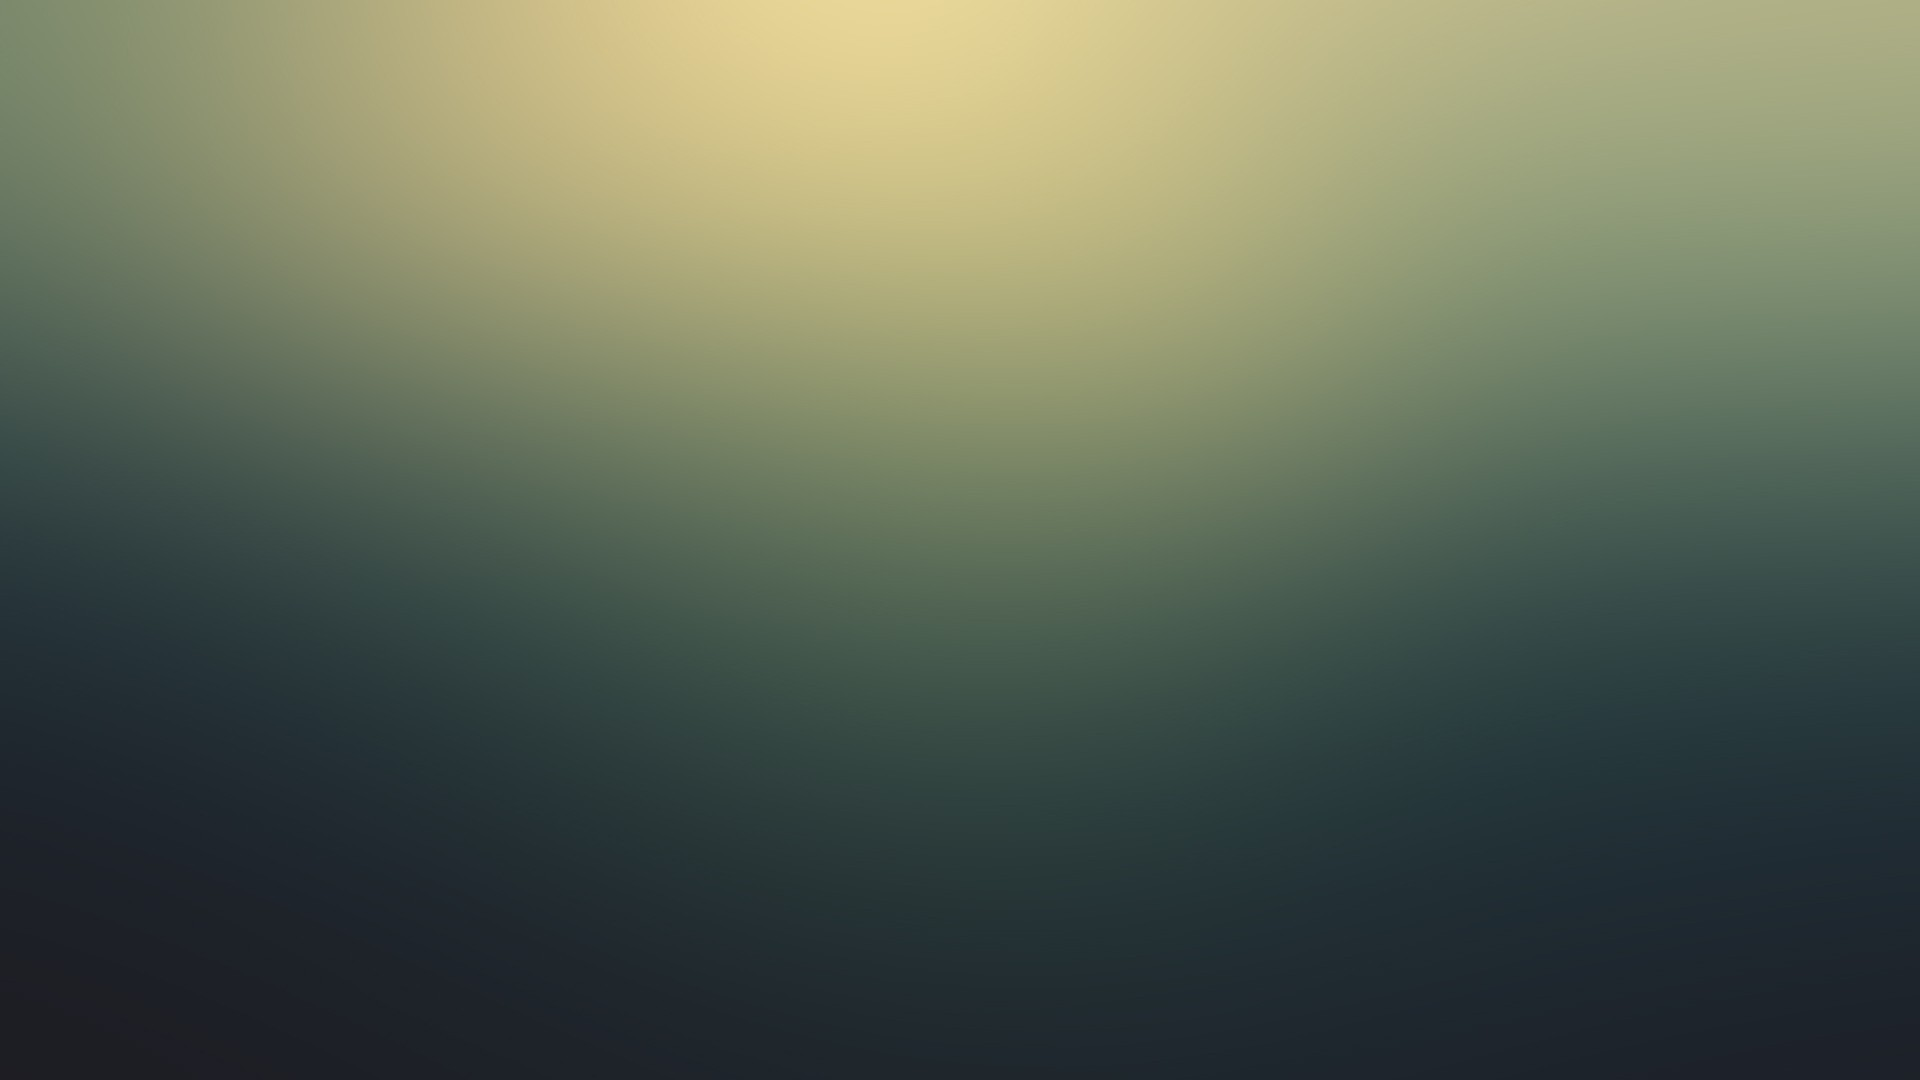 wallpaper blur 15 wallpapers